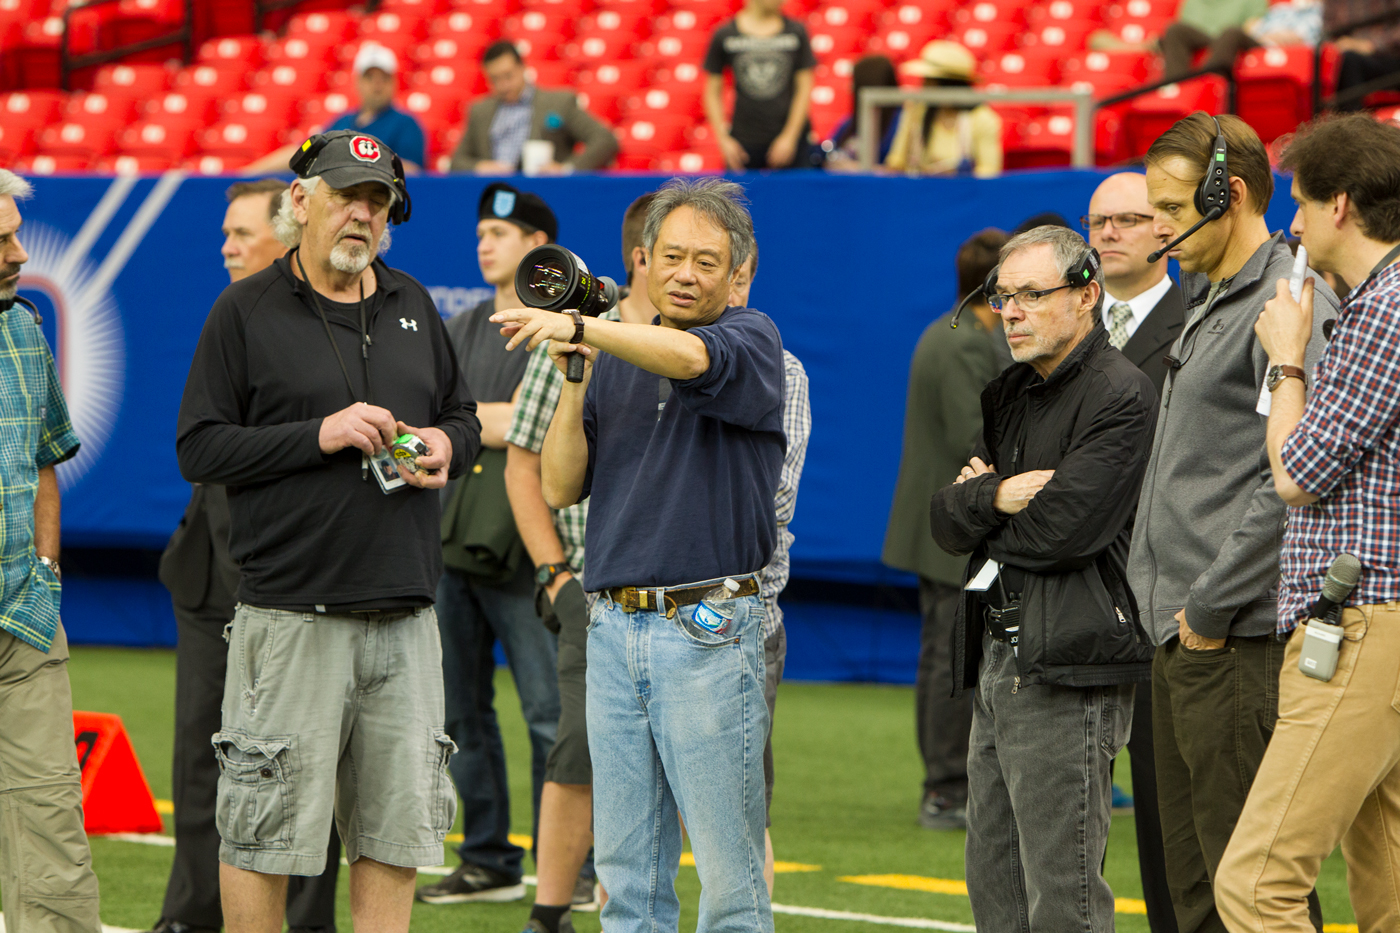 John Toll junto a Ang Lee en el rodaje de Billy Lynn's Long Halftime Walk